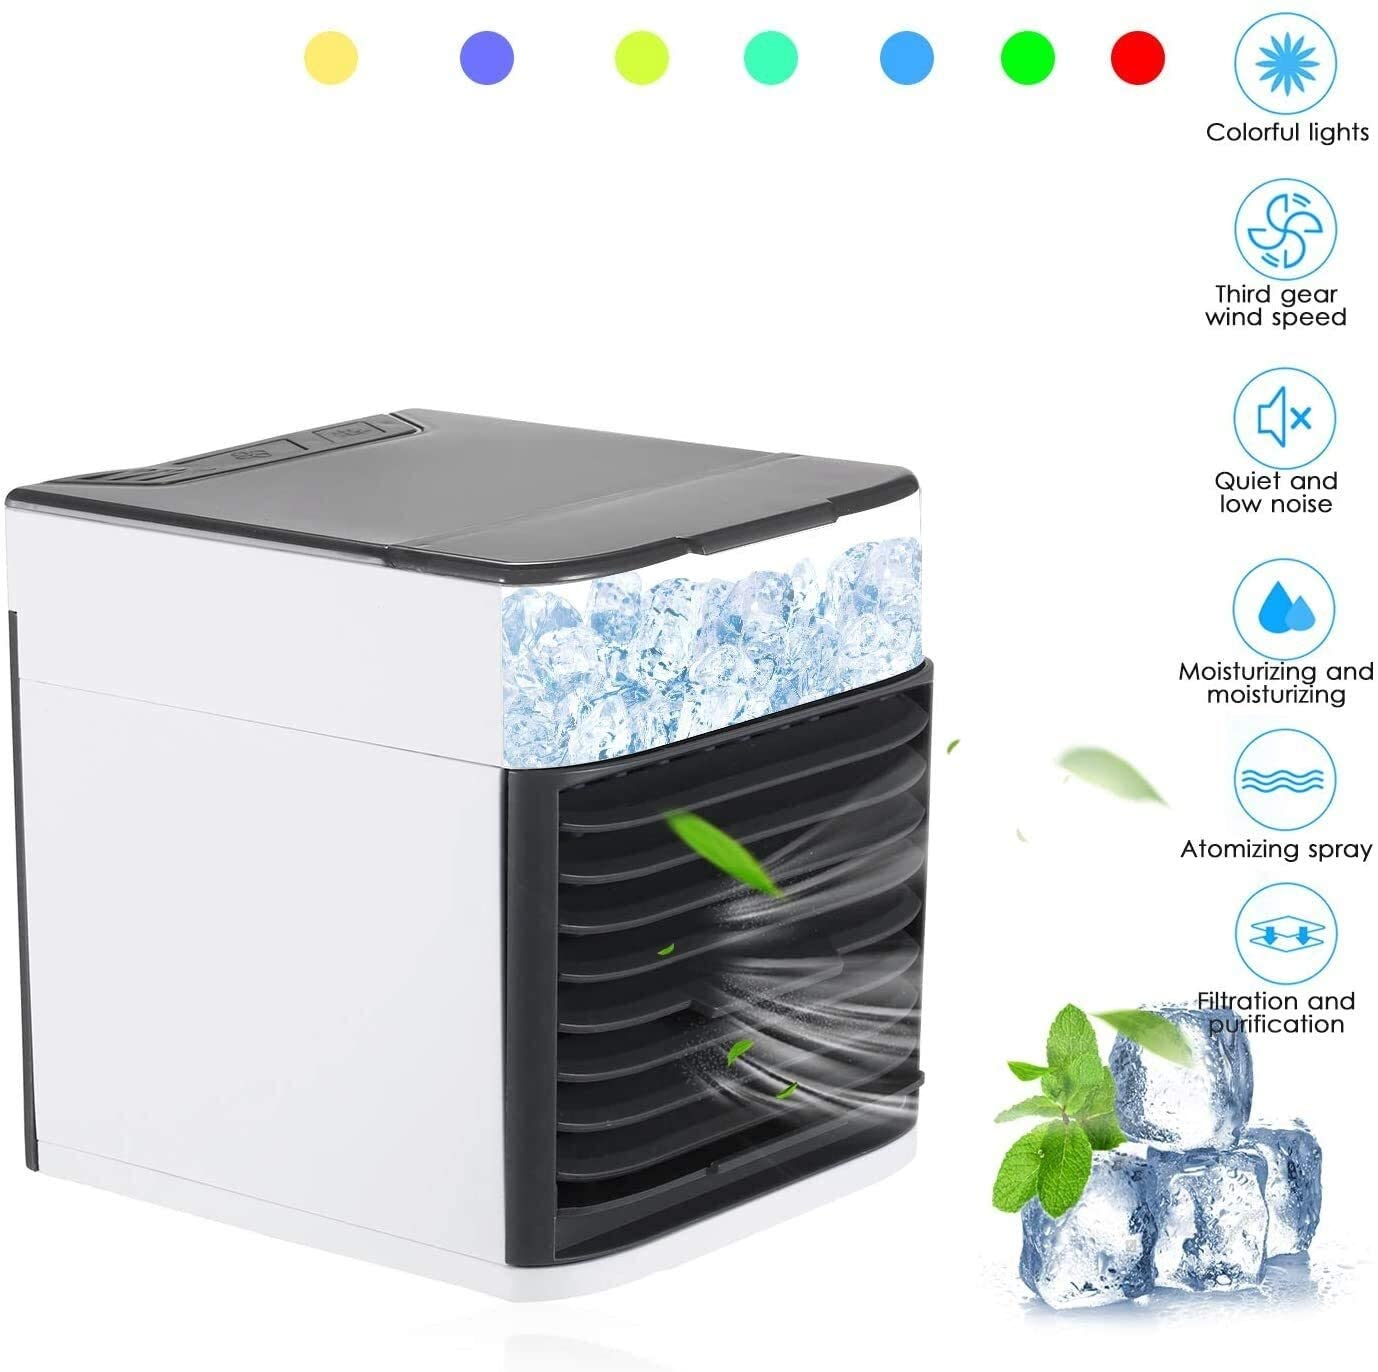 Elvoo Air Cooler Mini Portable Air Conditioner Fan Noiseless Evaporative Air Humidifier USB Personal Conditioner 3-Speed LED Night Office Childrens Room Bedroom Multifunction Cooler Purifier